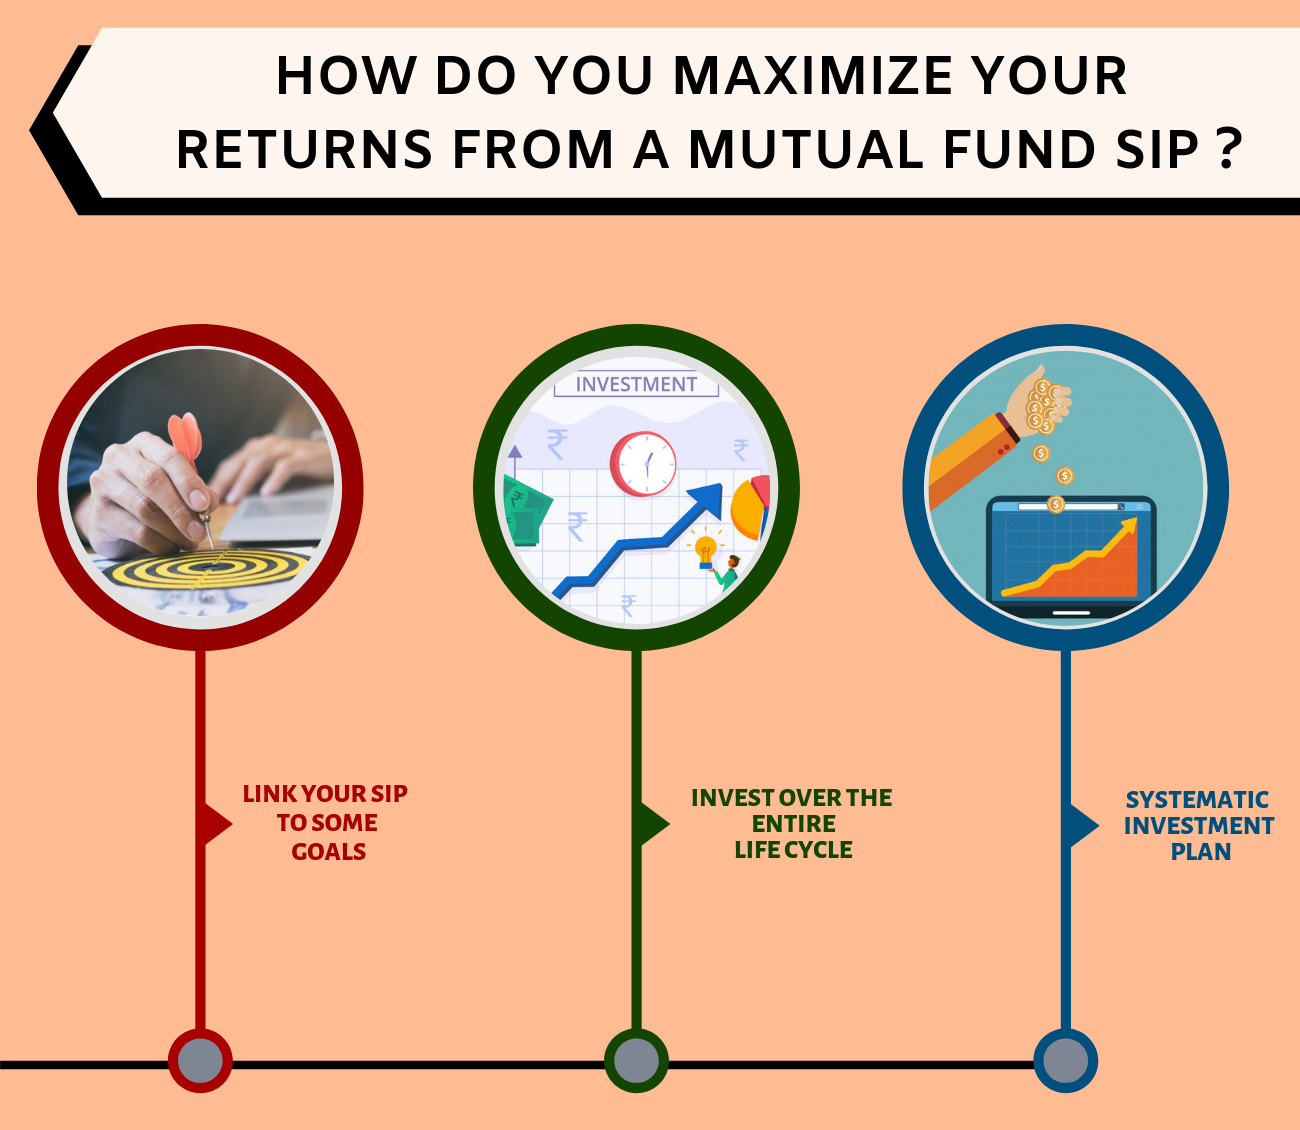 How do you maximize your returns from a Mutual Fund SIP? 1